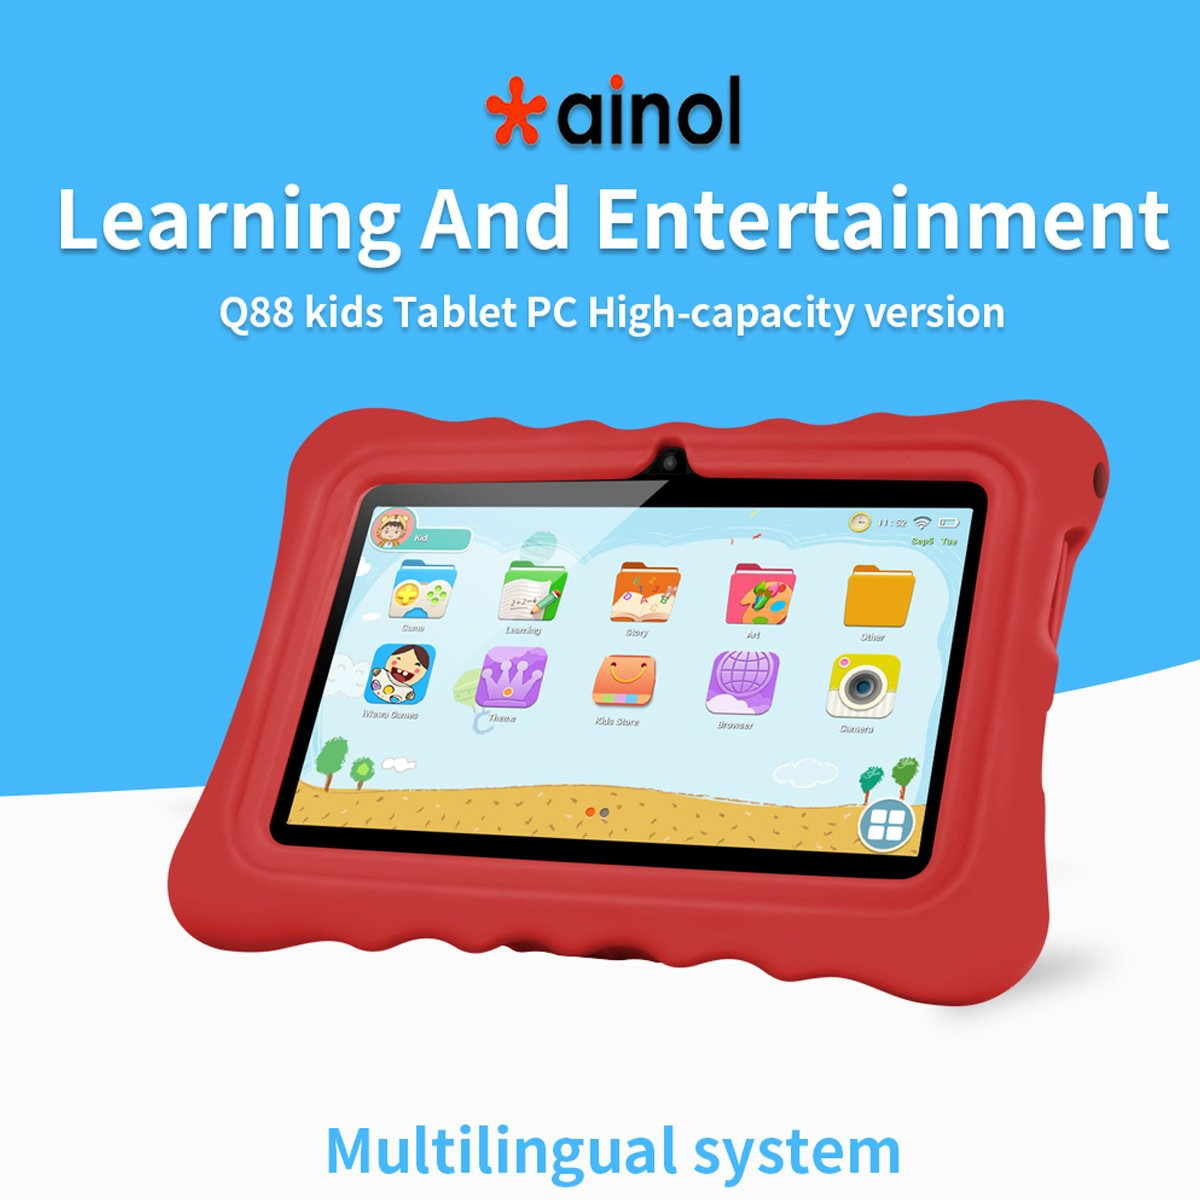 Ainol Q88 Android 7.1 RK3126C Quad Core 1GB+16GB 0.3MP+0.3MP Cam WIFI 2800Ah Tablet PC--Red by Ainol Q88 (Image #7)